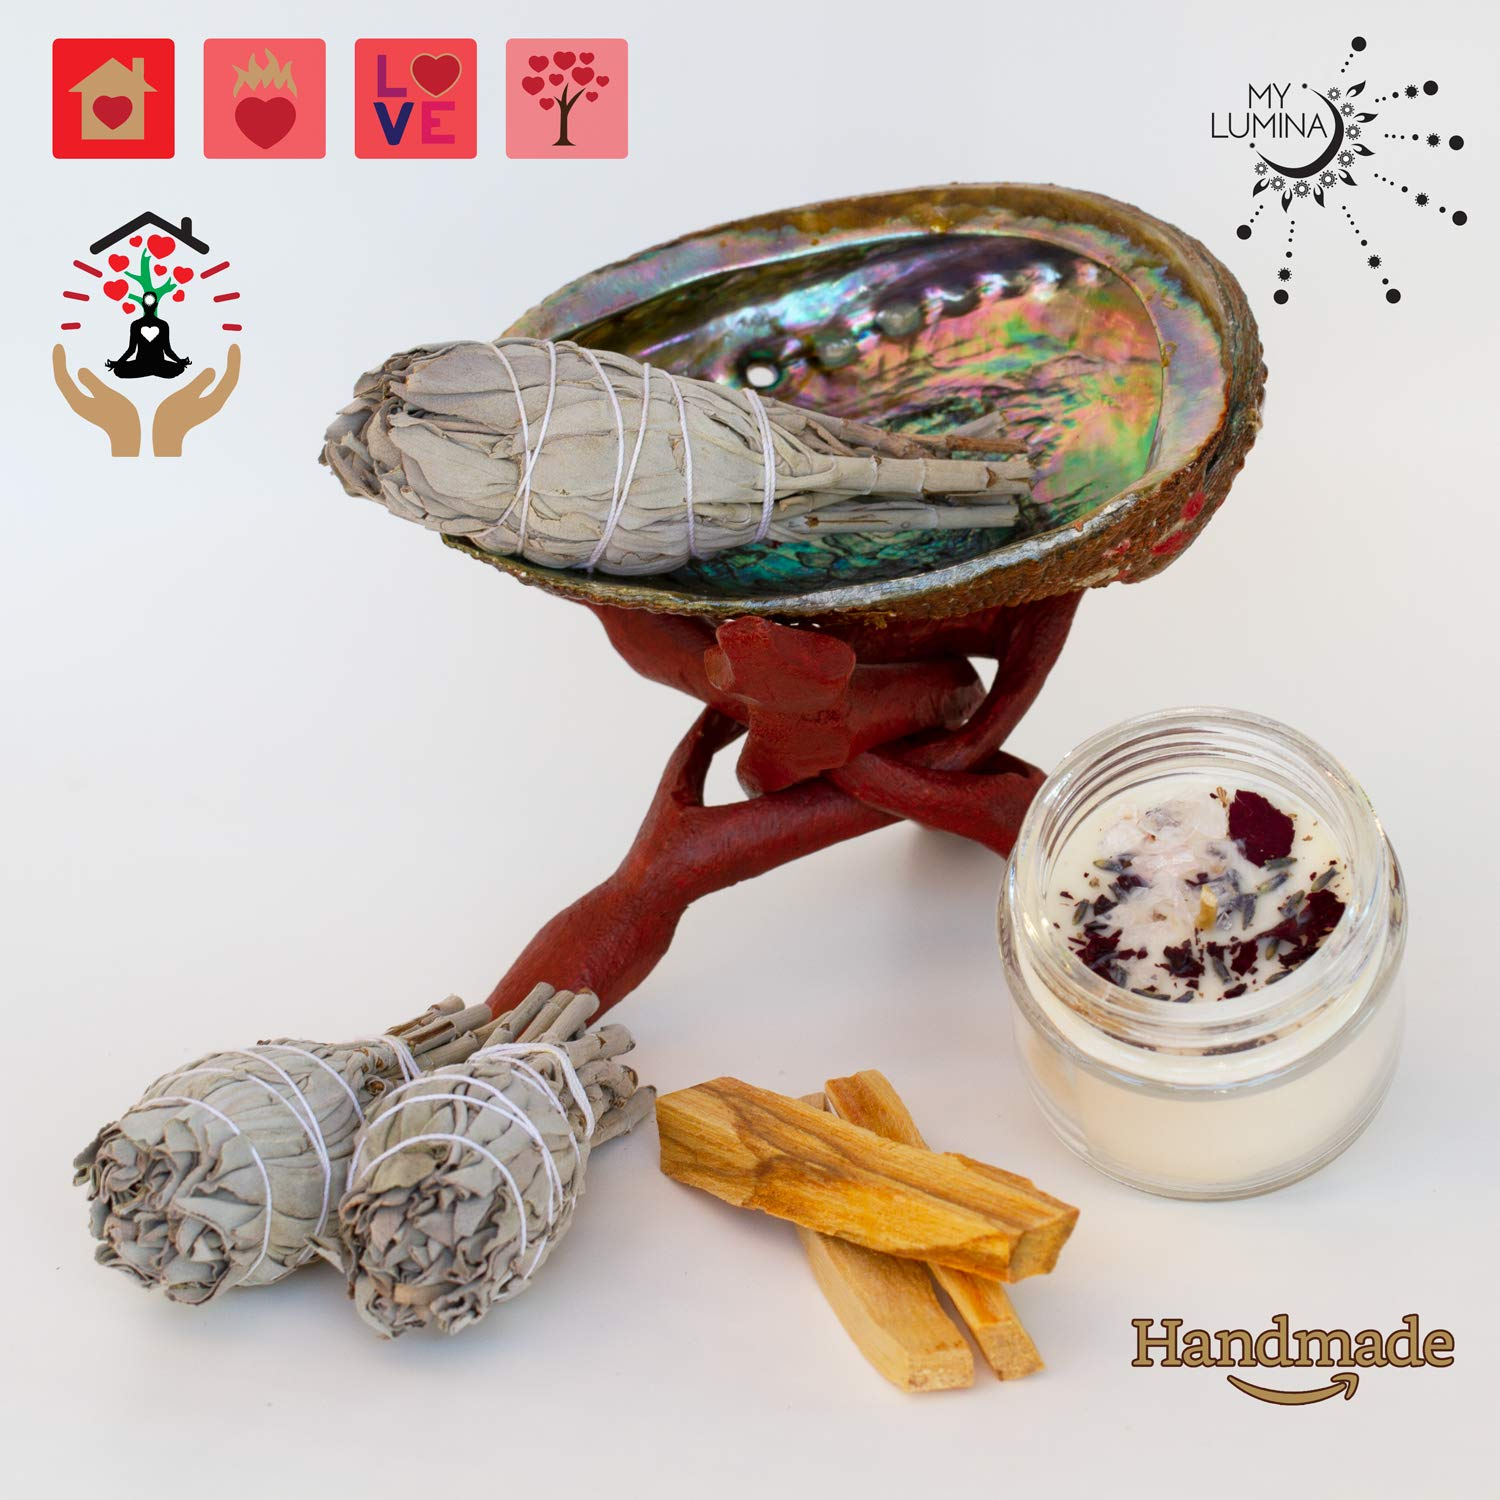 Love Cleansing and Blessing Kit - Smudging Chakra Balancing, White Sage, Palo Santo Sticks, Abalone Shell, Love Candle Healing Incense, Good Luck, Purifying, Protection, Love Attraction Kit